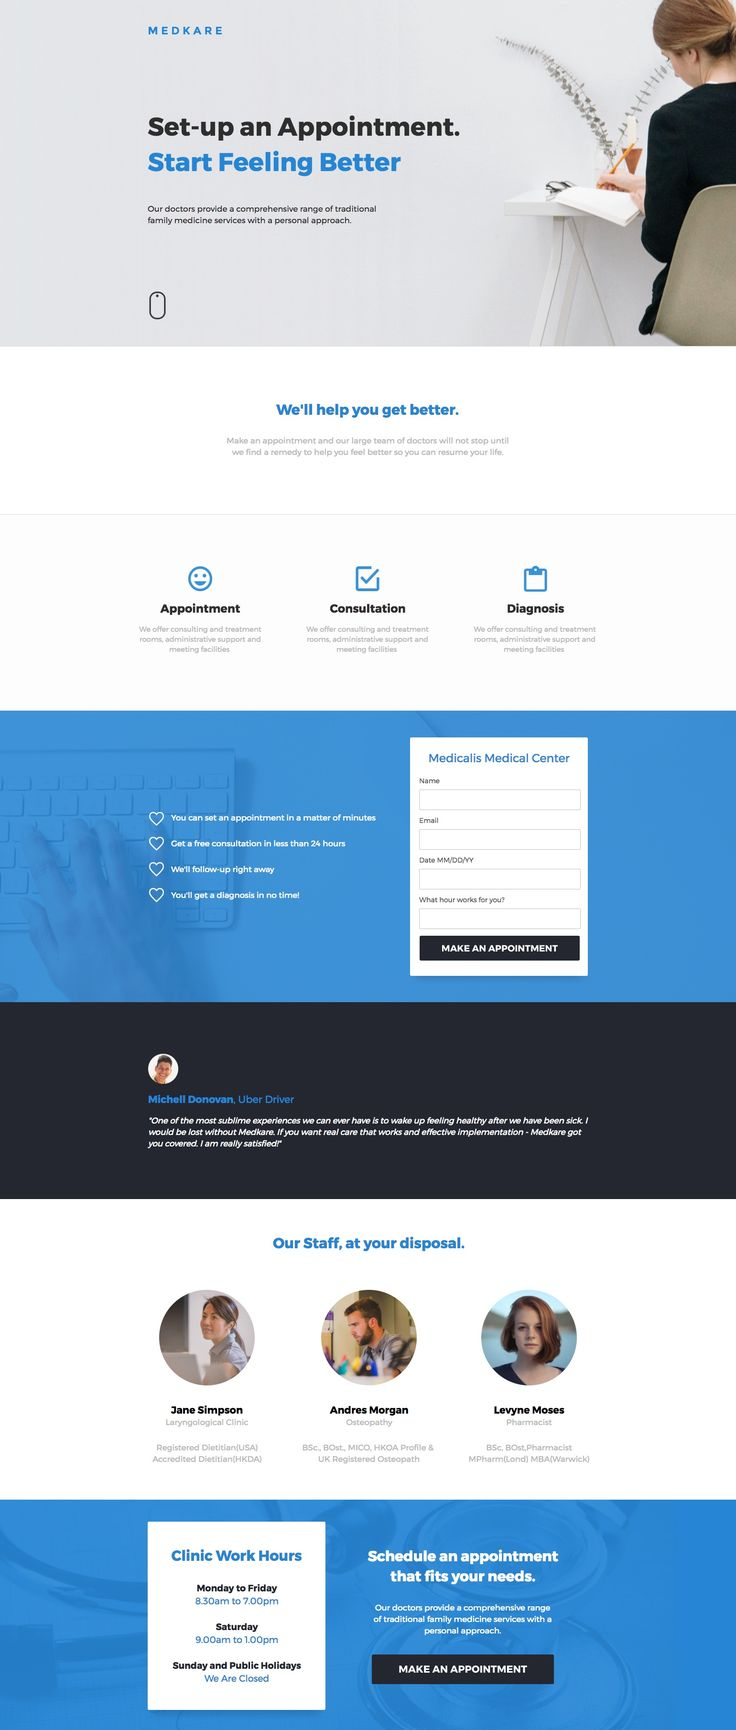 Schedule a visit with the Medkare template. Let the sick know your clinic hours, the staff at their disposal, and the services you provide. They'll be better in no time!  #landingpages #advertising #templates #landingpagetemplates